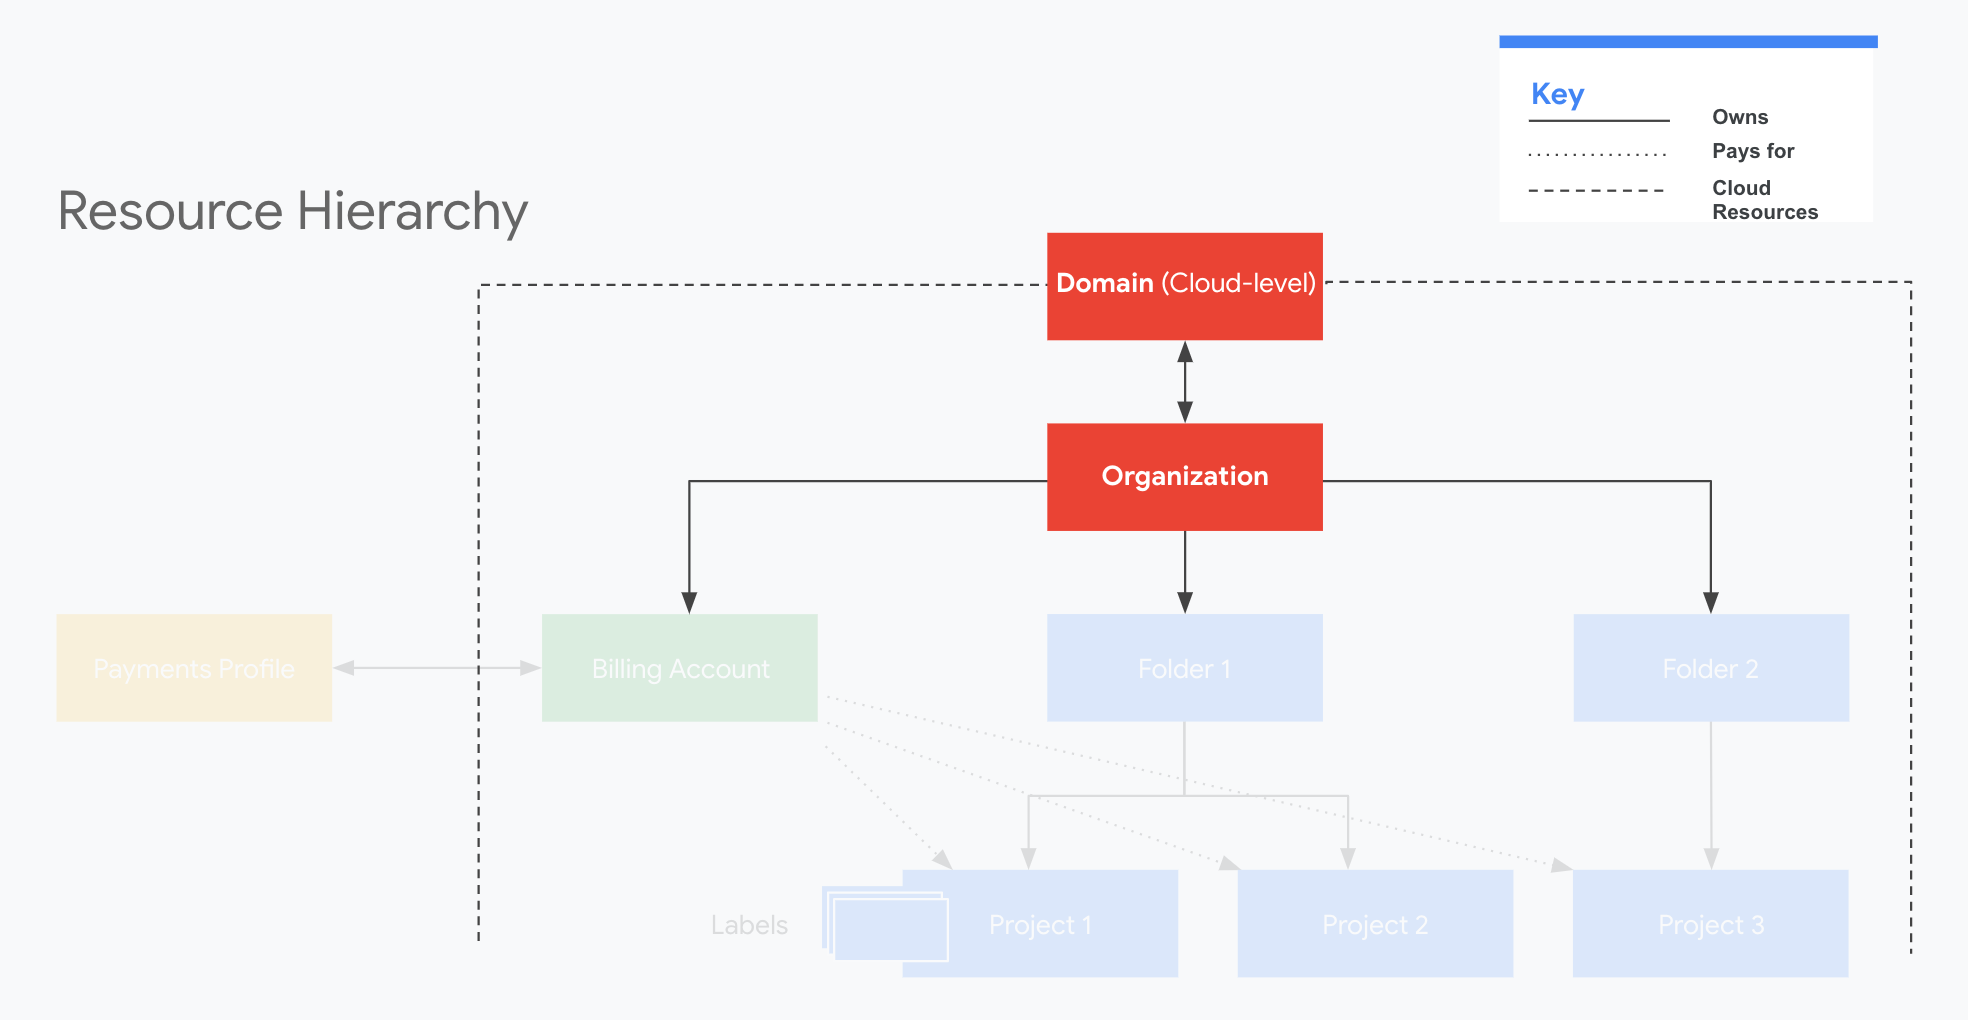 Domain and Organization in the Resource Hierarchy